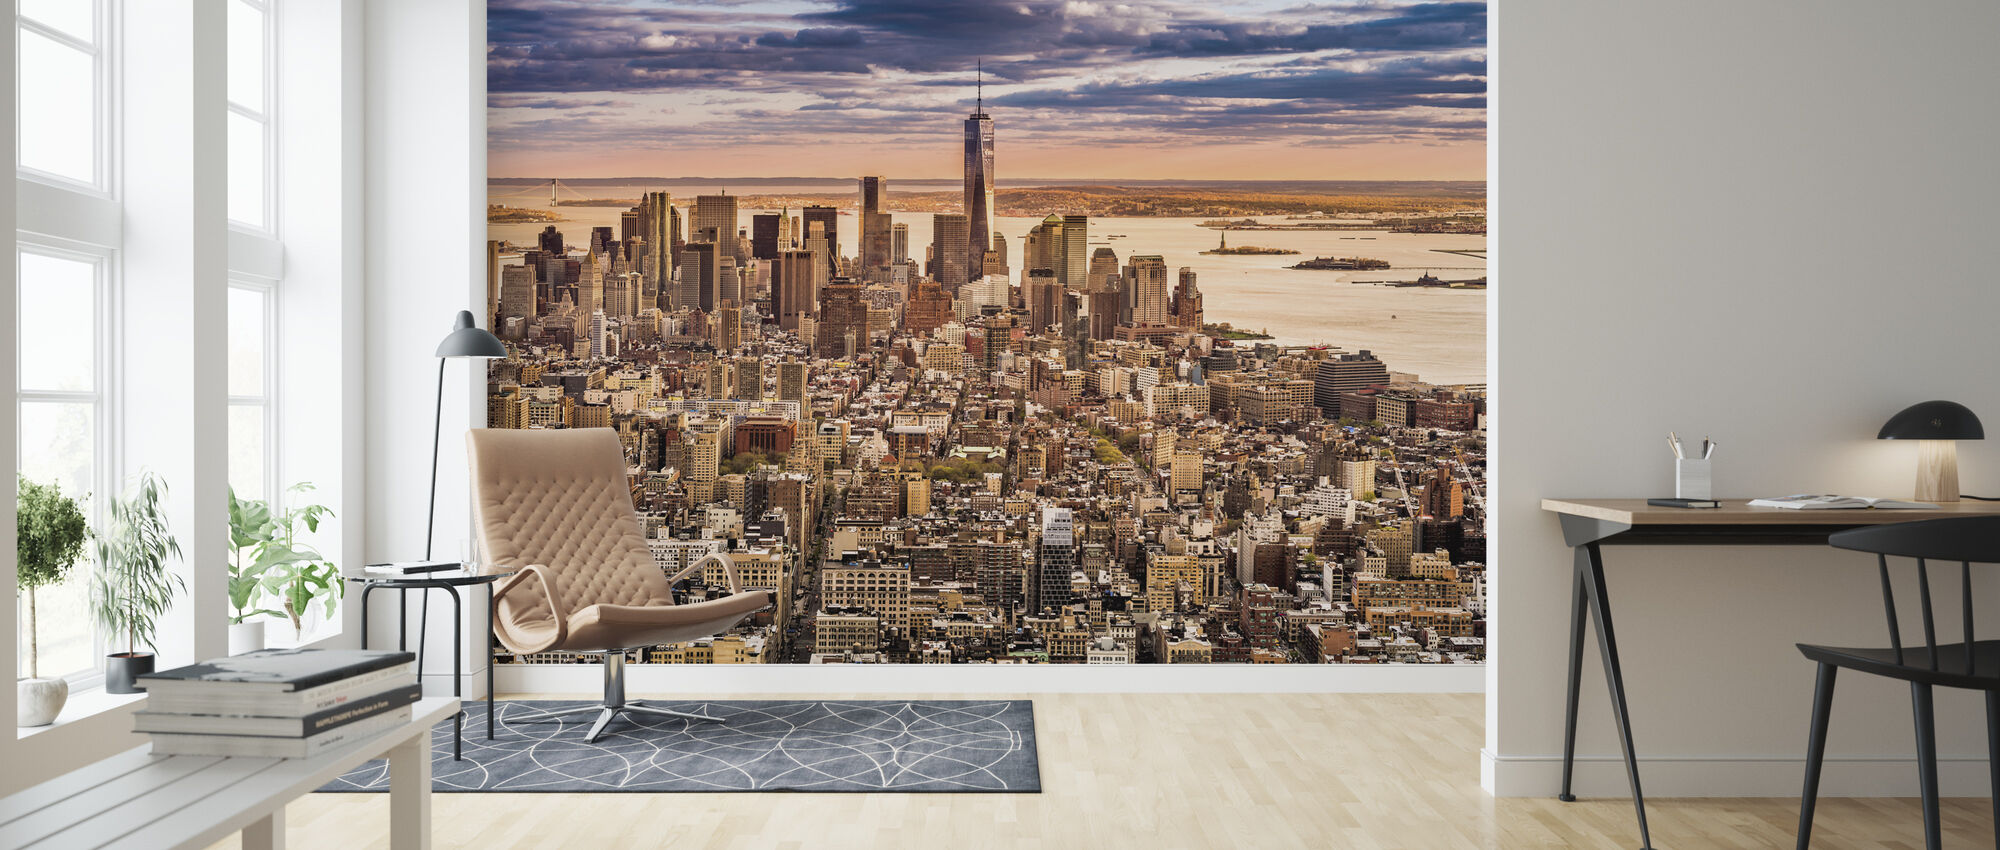 New York Panorama before Sunset - Wallpaper - Living Room